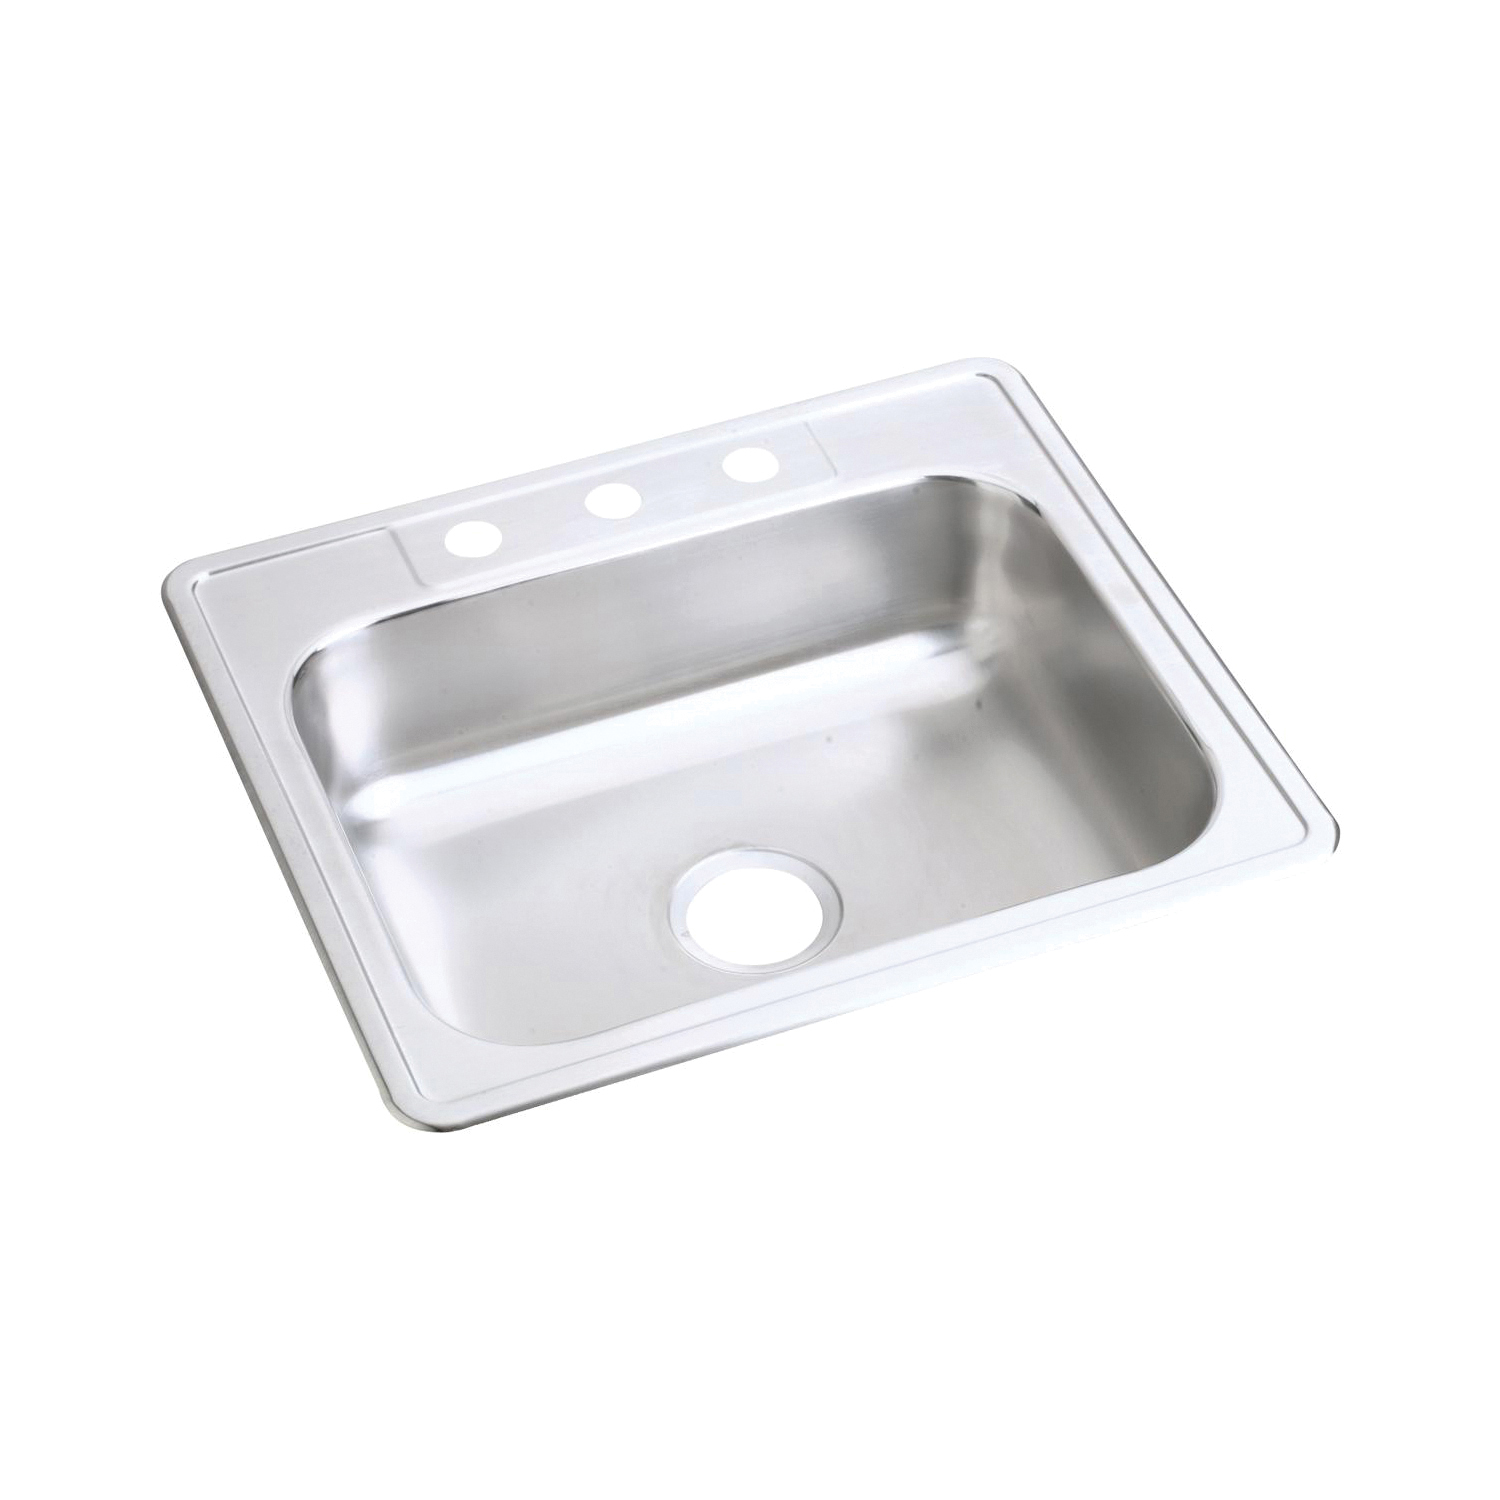 Elkay® D125224 Dayton® Kitchen Sink, Rectangular, 4 Faucet Holes, 25 in W x 22 in D x 6-9/16 in H, Top Mount, Stainless Steel, Satin, Domestic